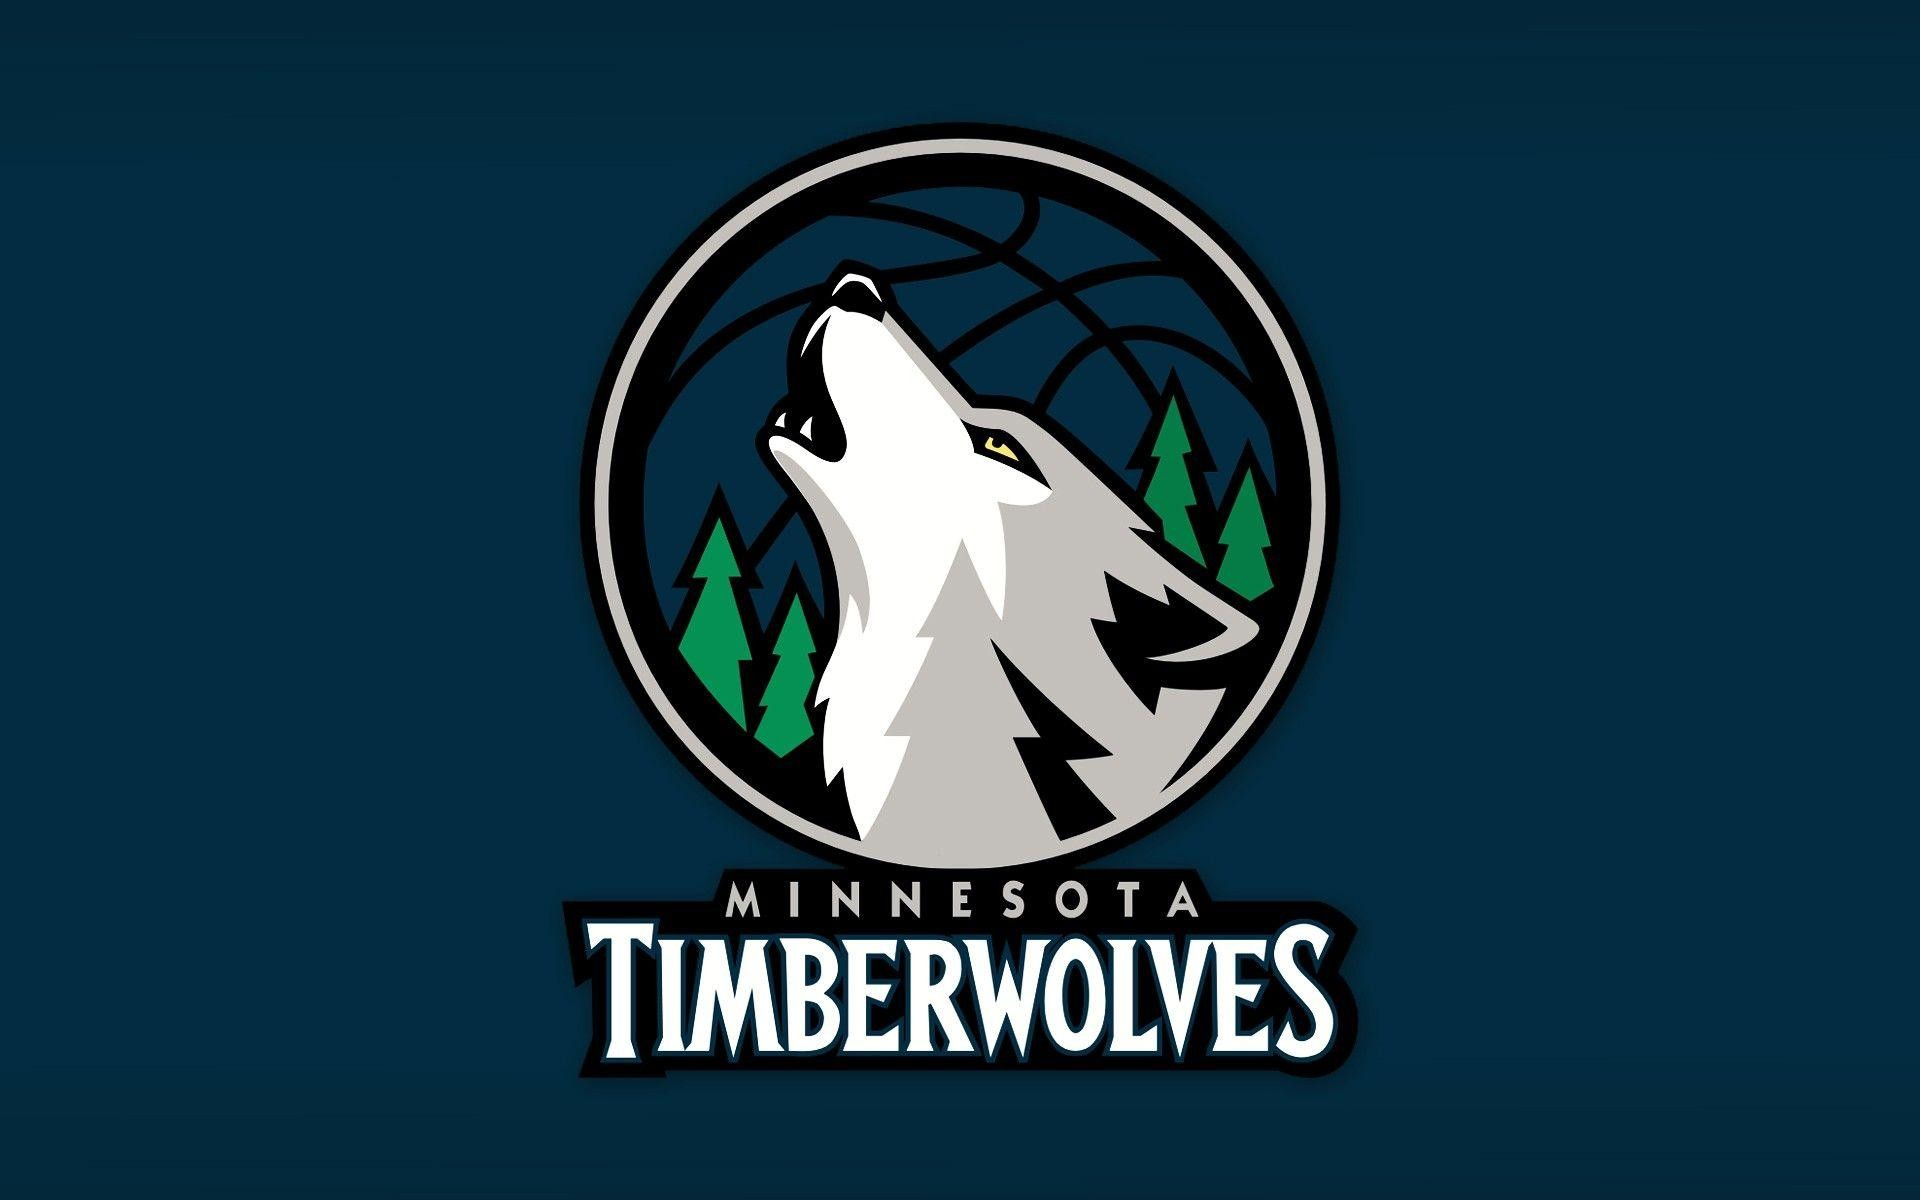 Minnesota Timberwolves Wallpapers 58 images 1920x1200